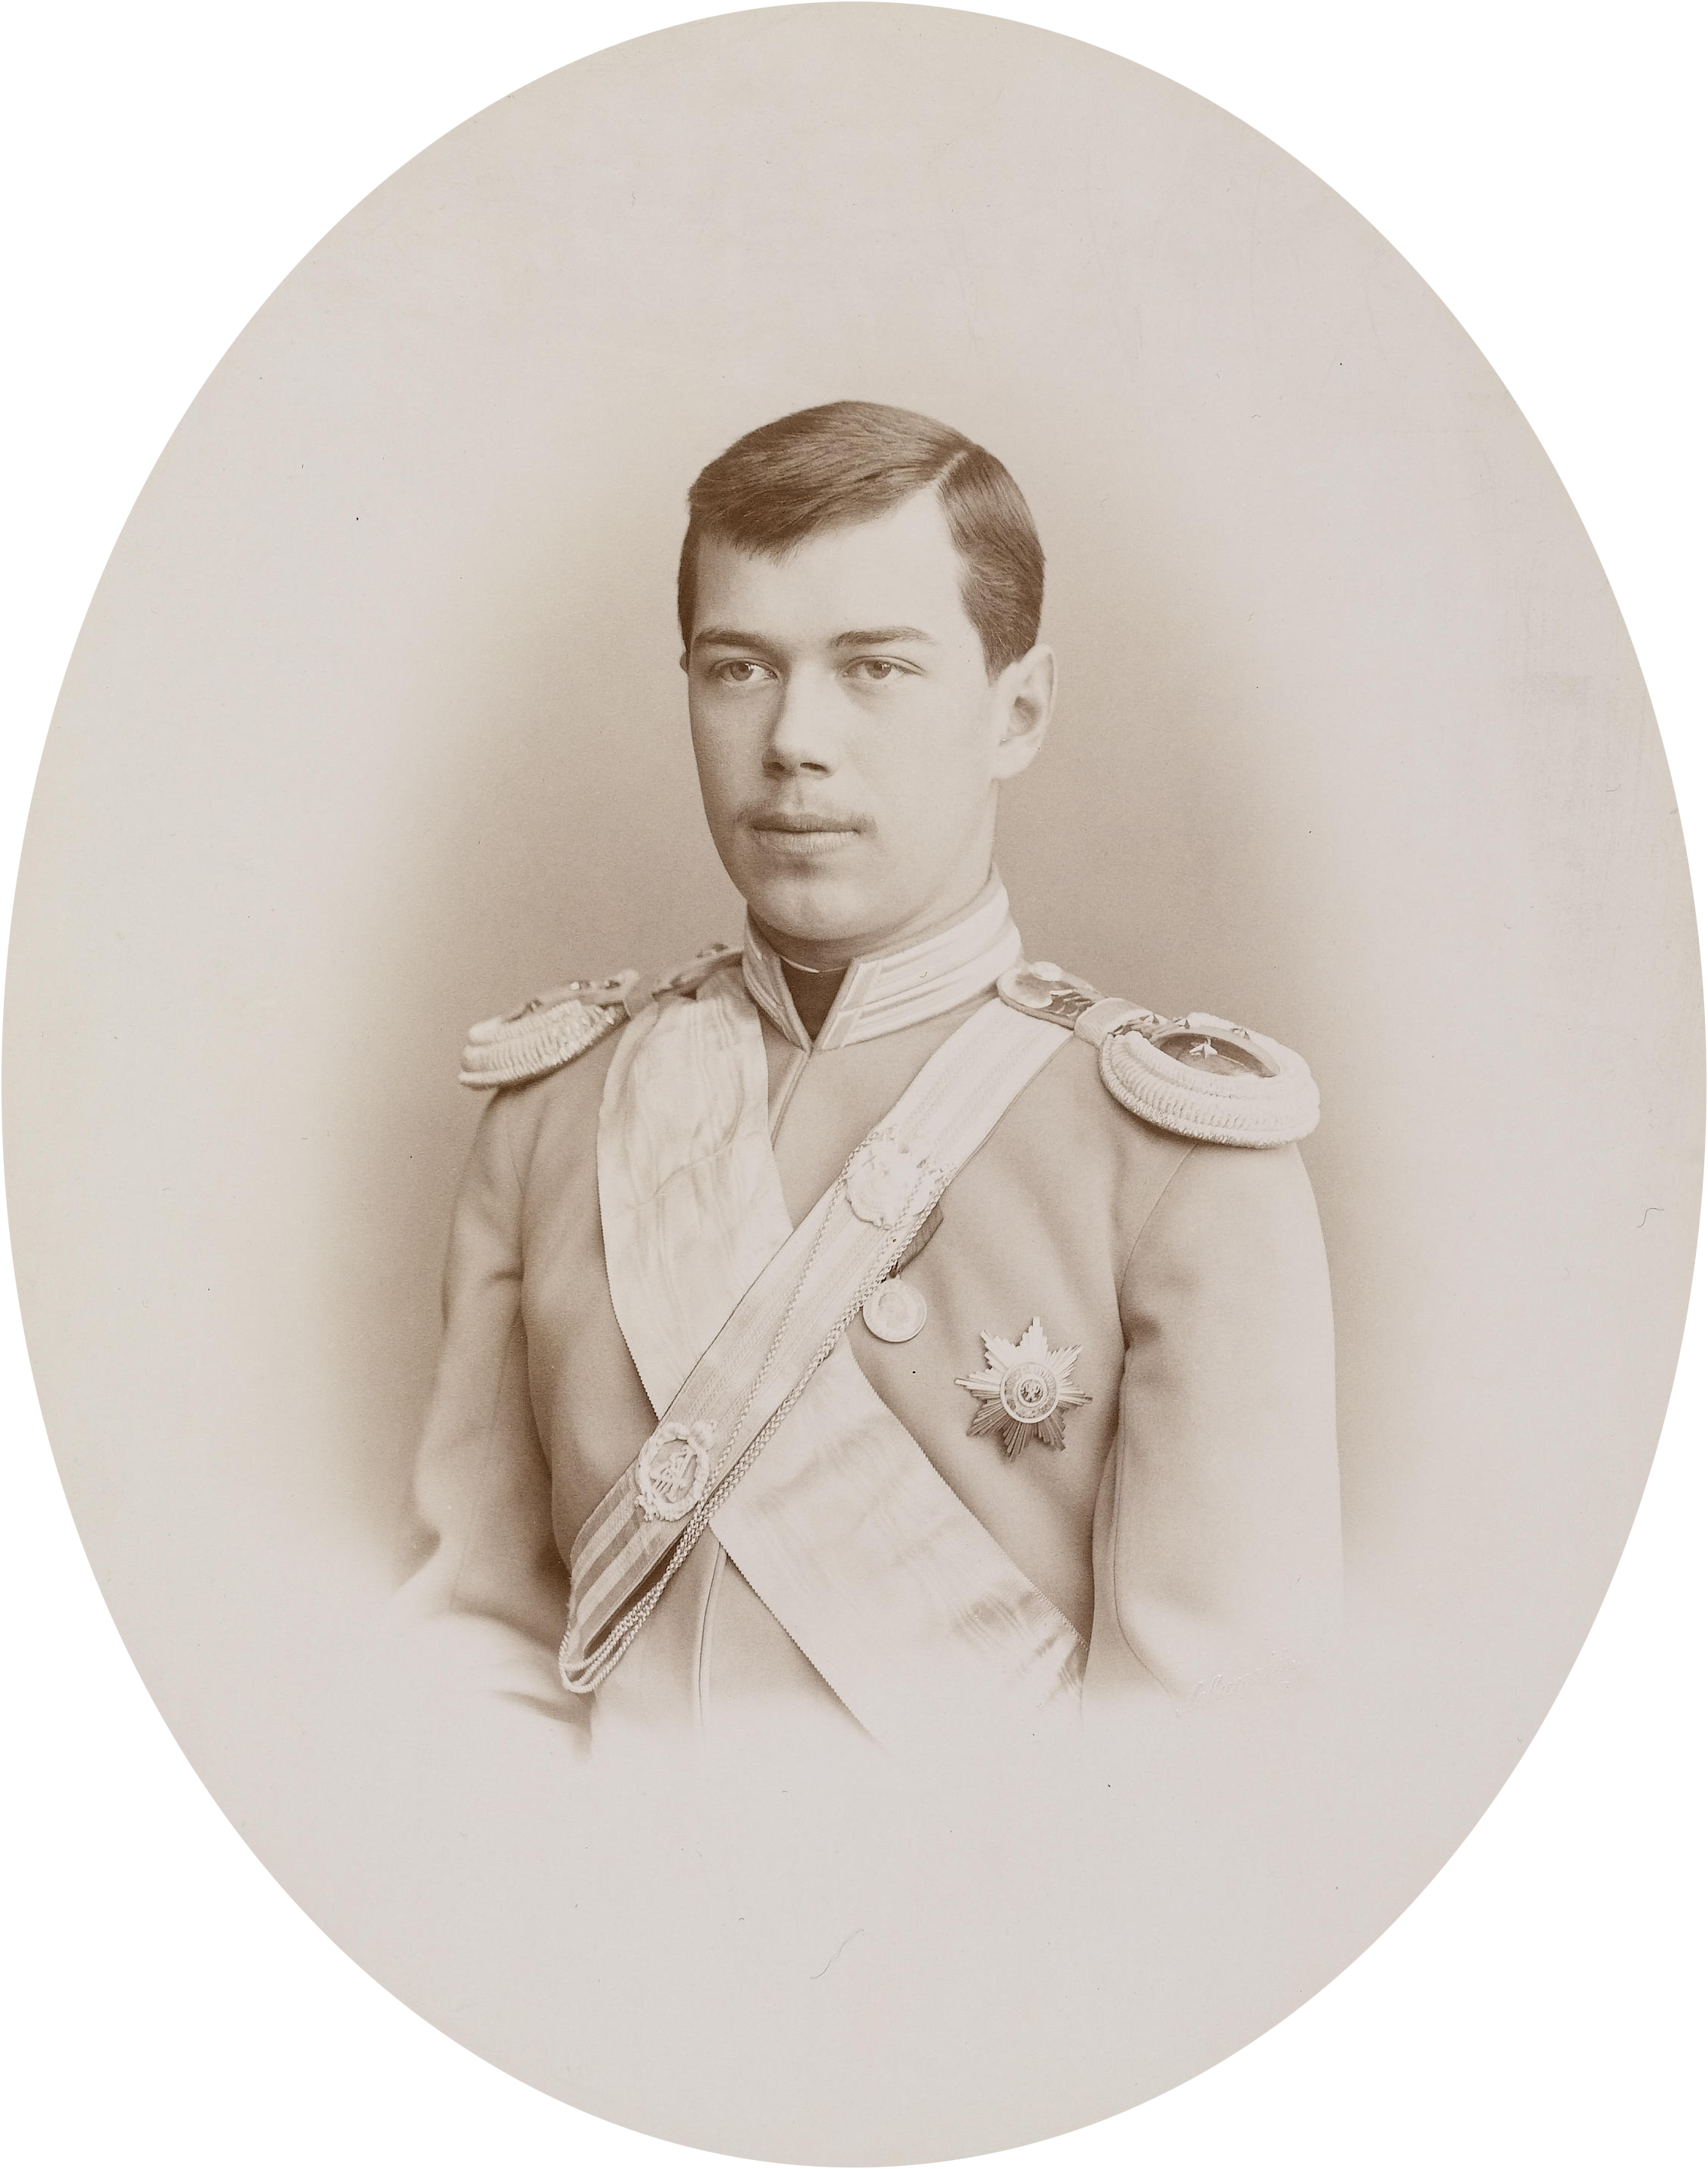 a biography of nicholas ii of russia News about nicholas ii, czar of russia commentary and archival information about nicholas ii, czar of russia from the new york times.